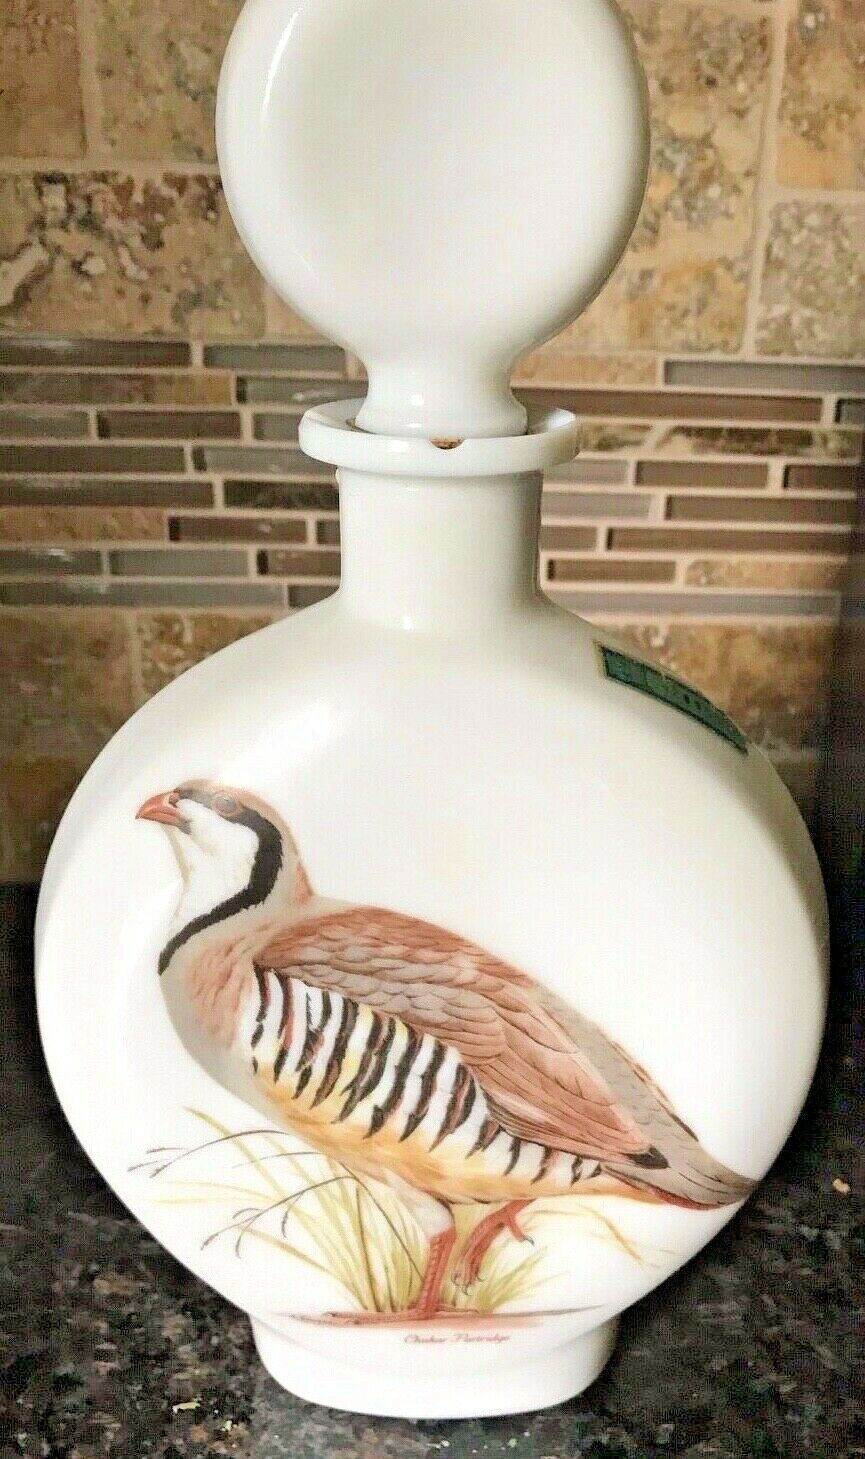 Primary image for 1969 Jim Beam Whiskey Decanter Edition No 2 Field Birds Chukar Partridge Singer